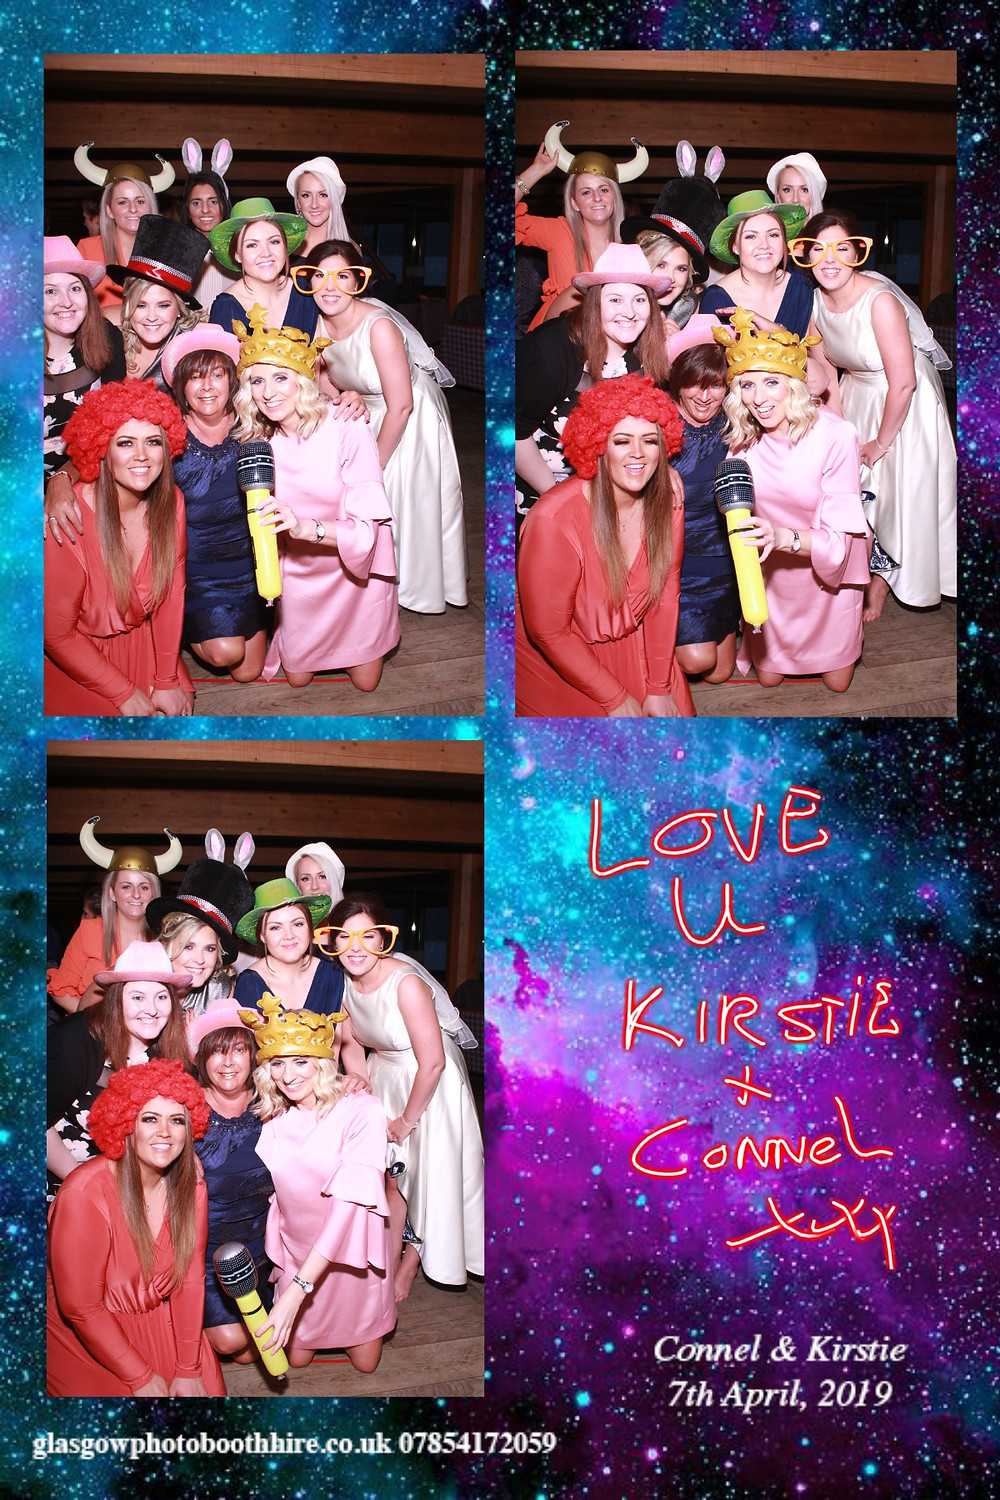 The Wedding of Connel & Kirstie